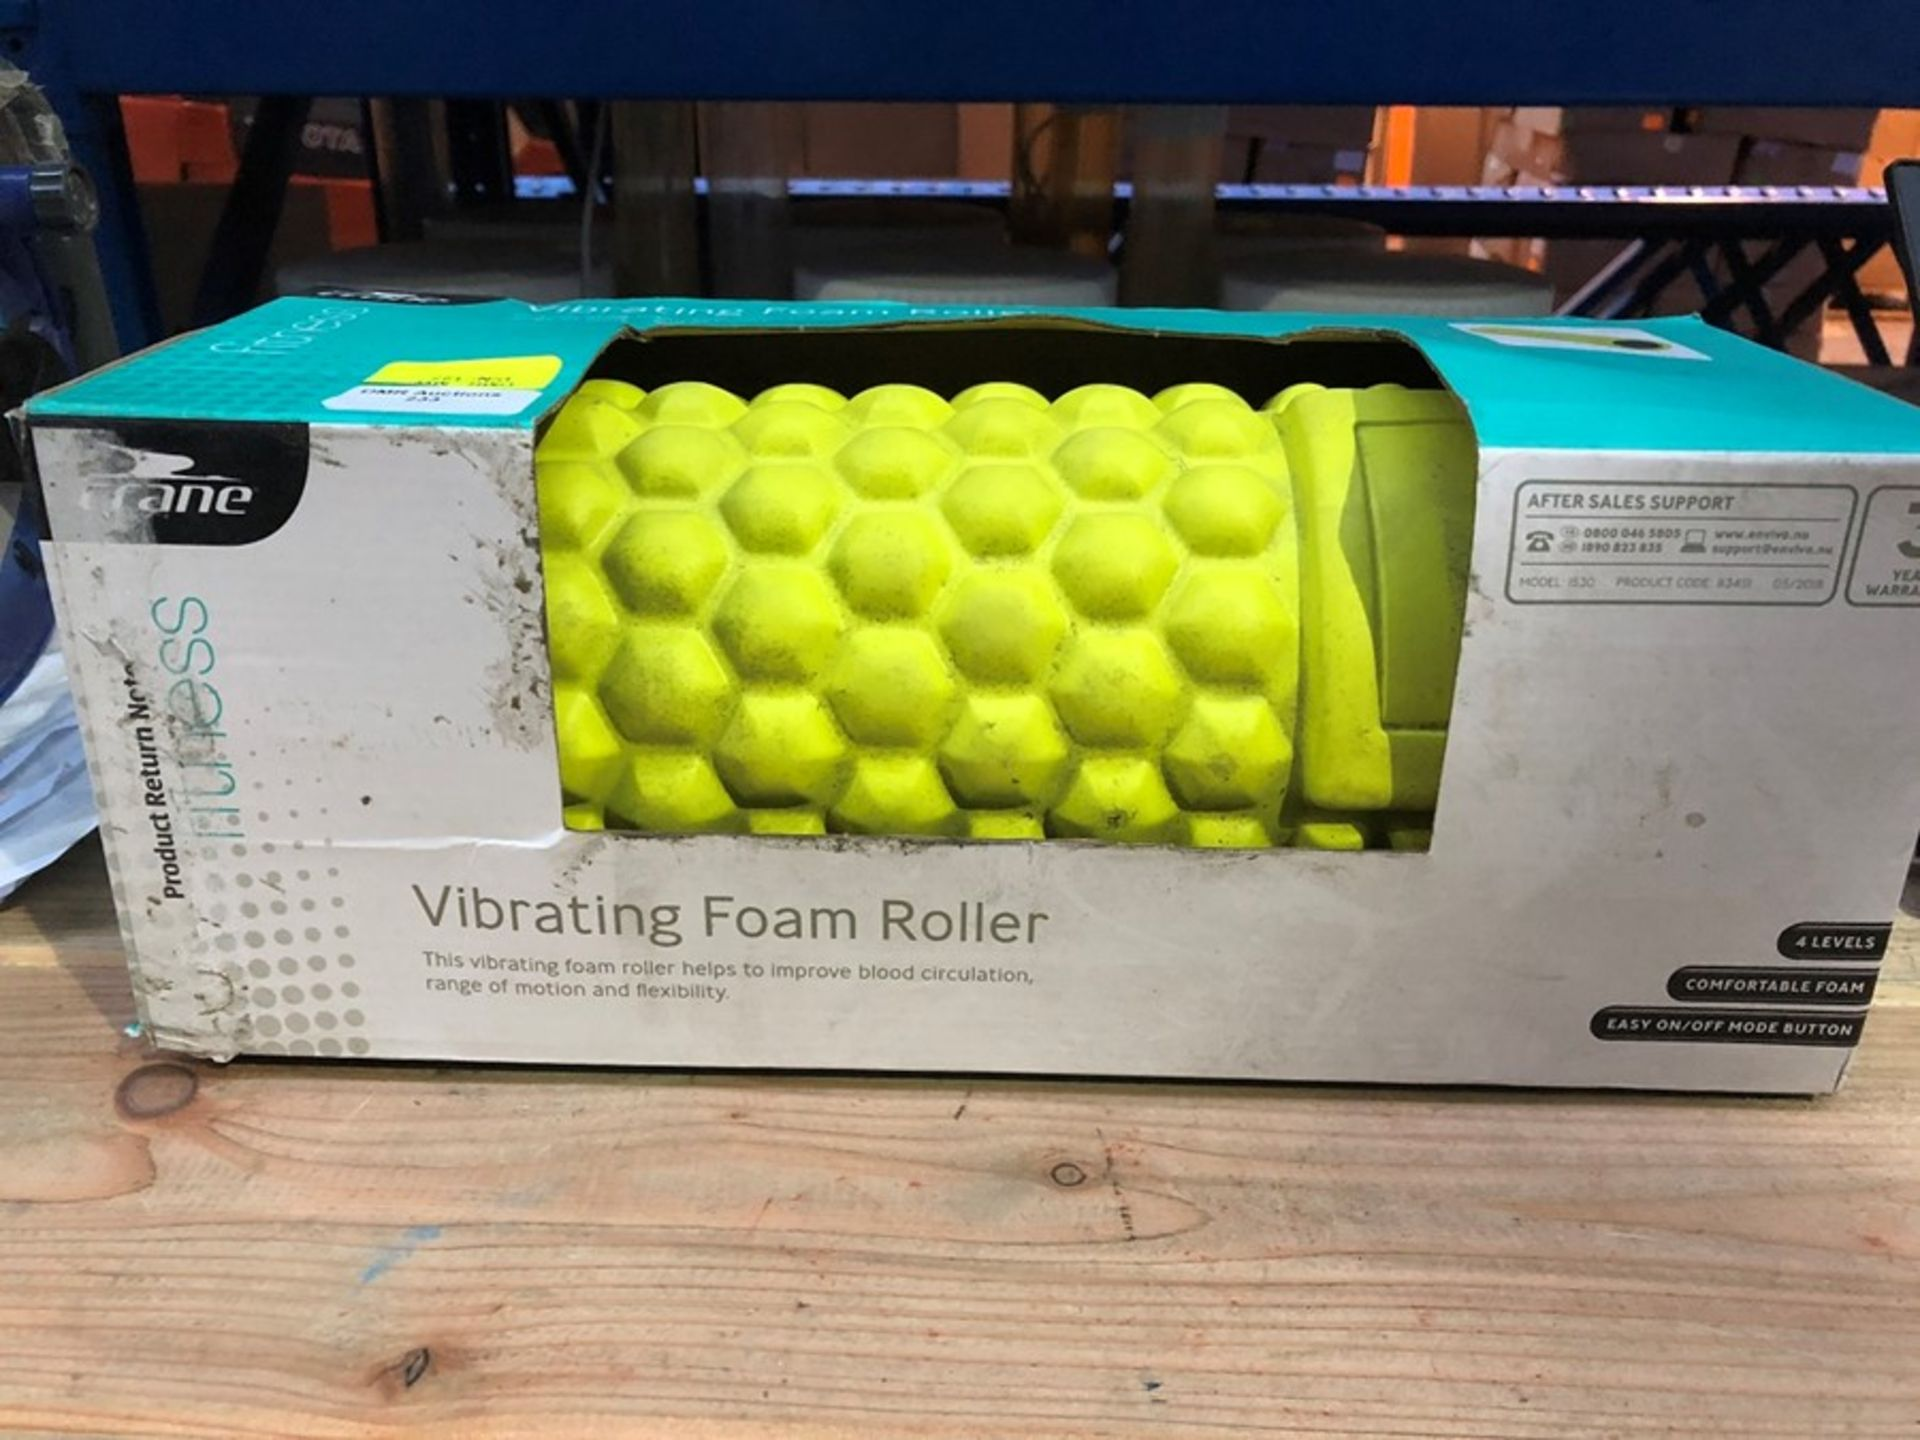 Lot 233 - 1 BOXED CRANE VIBRATING FOAM ROLLER / RRP £24.99 (PUBLIC VIEWING AVAILABLE)